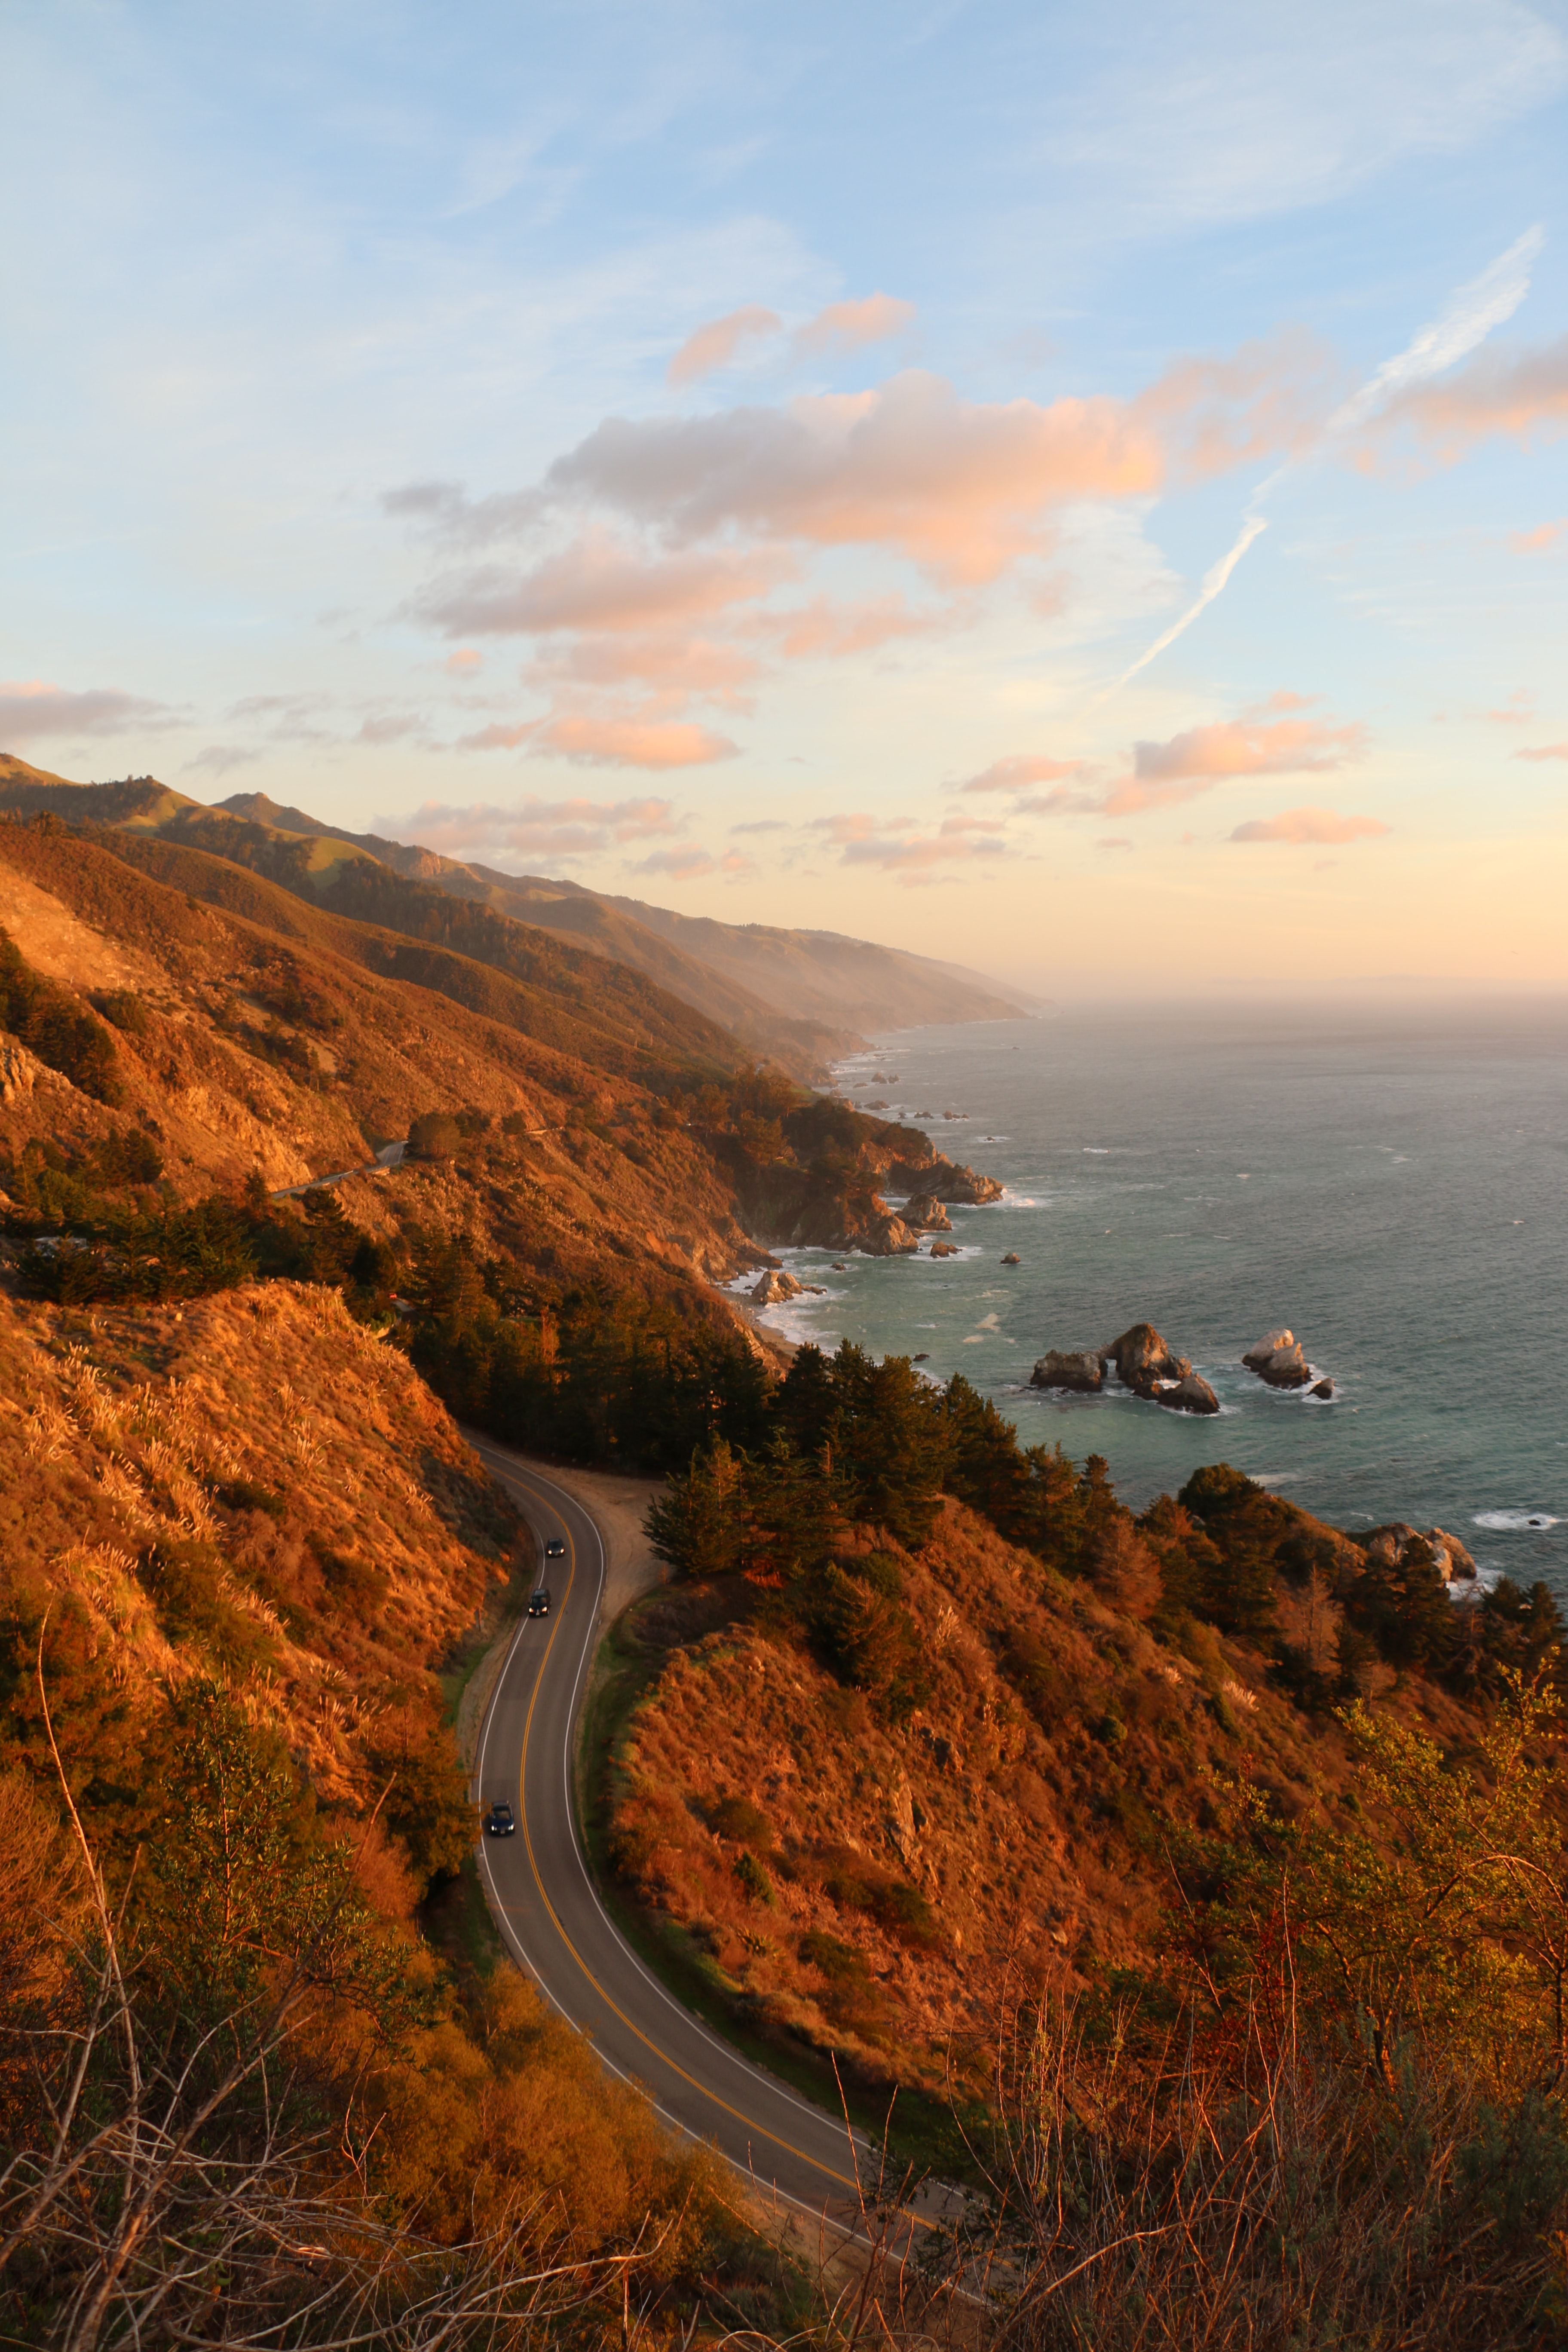 The winding road of the Pacific Coast Highway in Big Sur